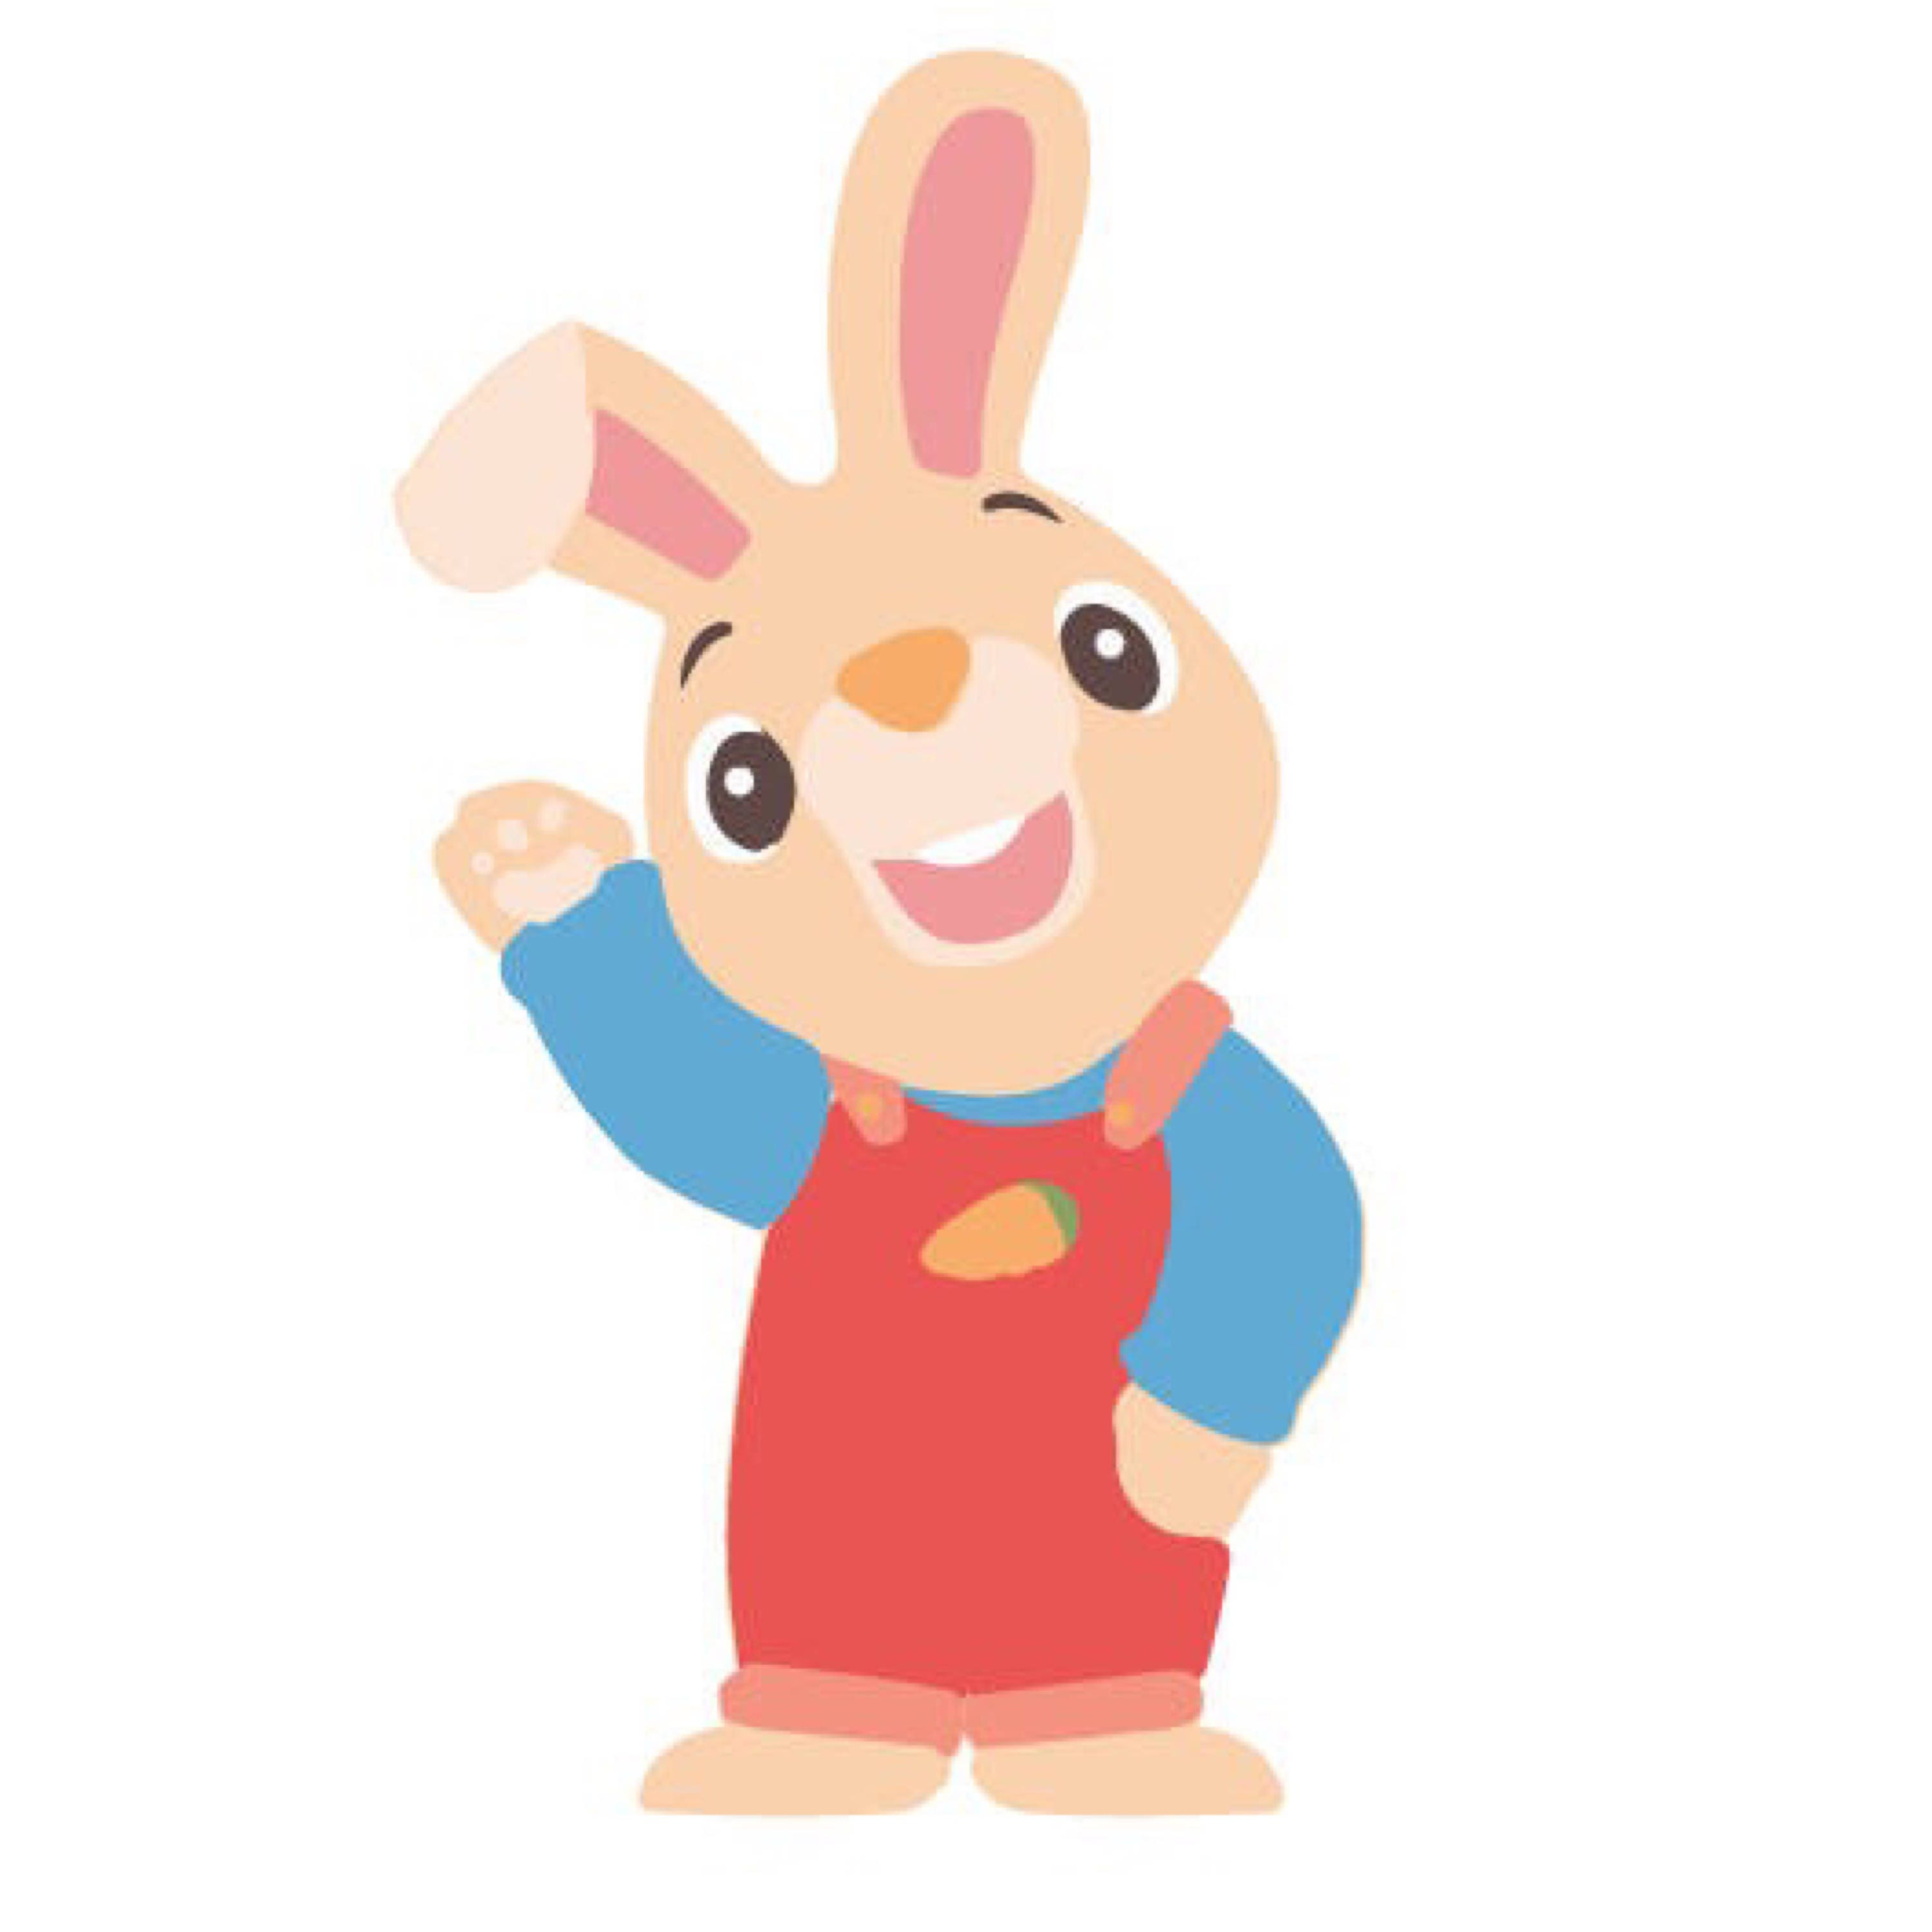 Sale Harry the Bunny BabyFirst s for cutting and printing